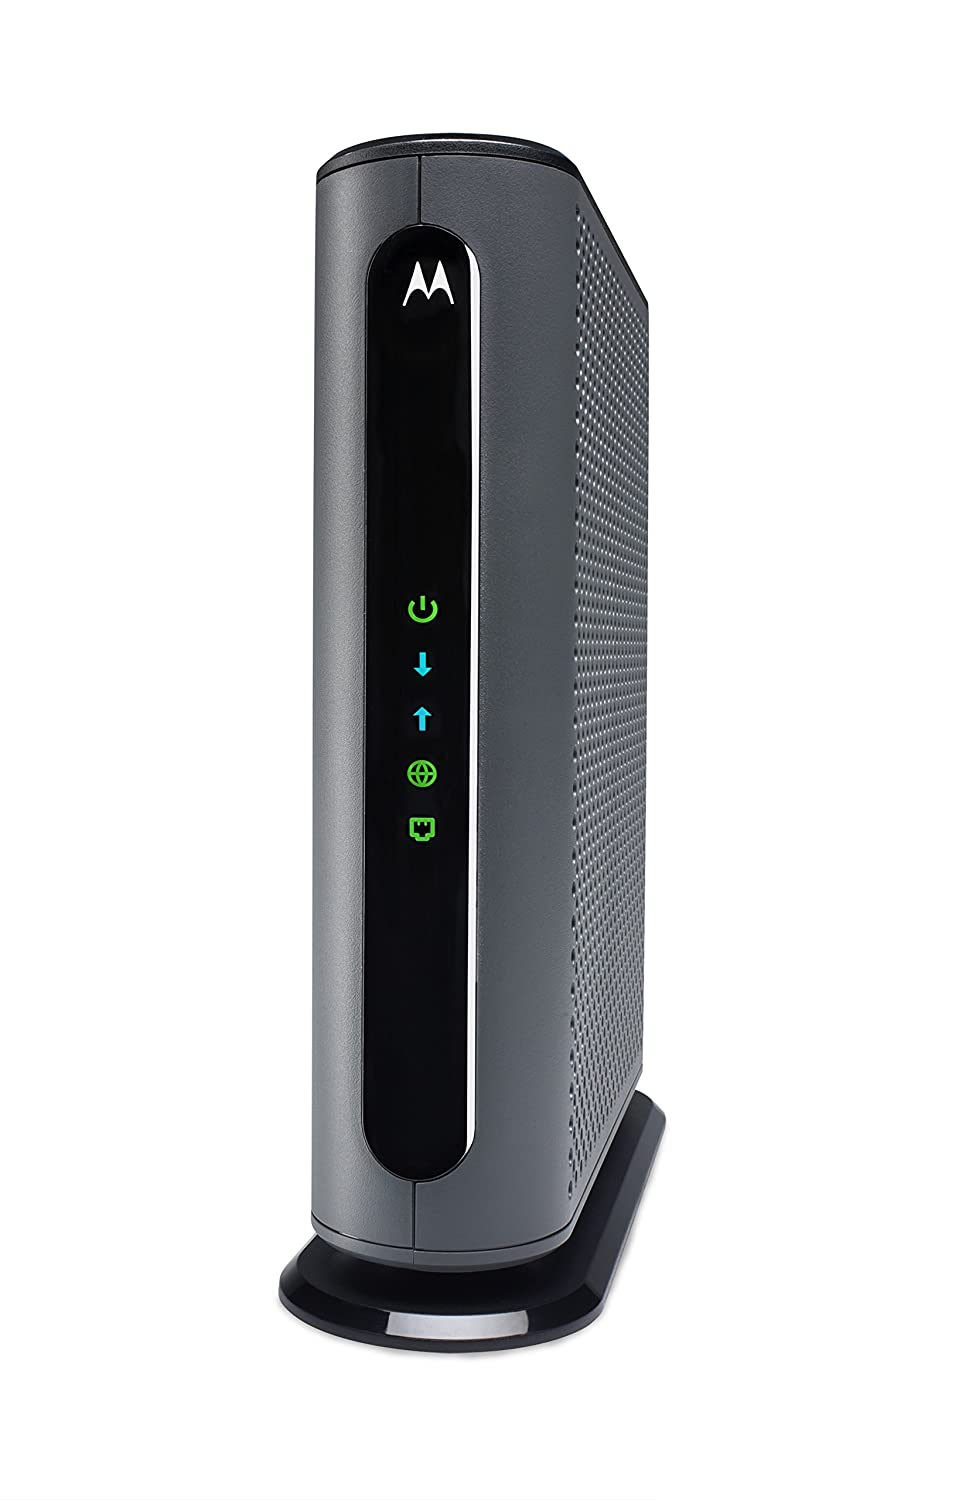 Comcast supported modems Motorola MB8600